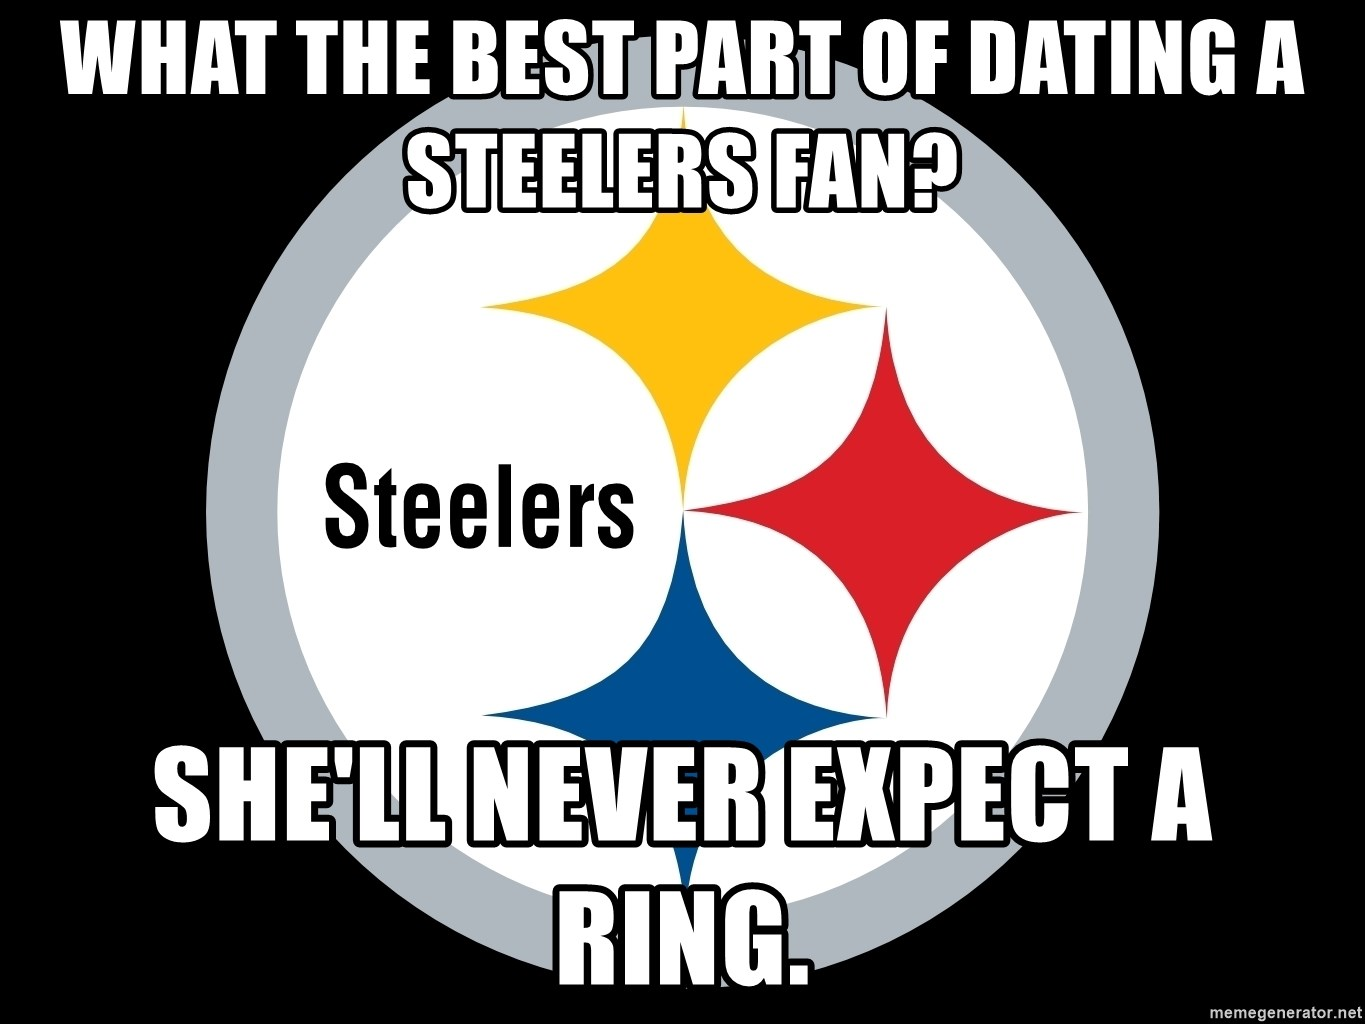 What The Best Part Of Dating A Steelers Fan Shell Never Expect A